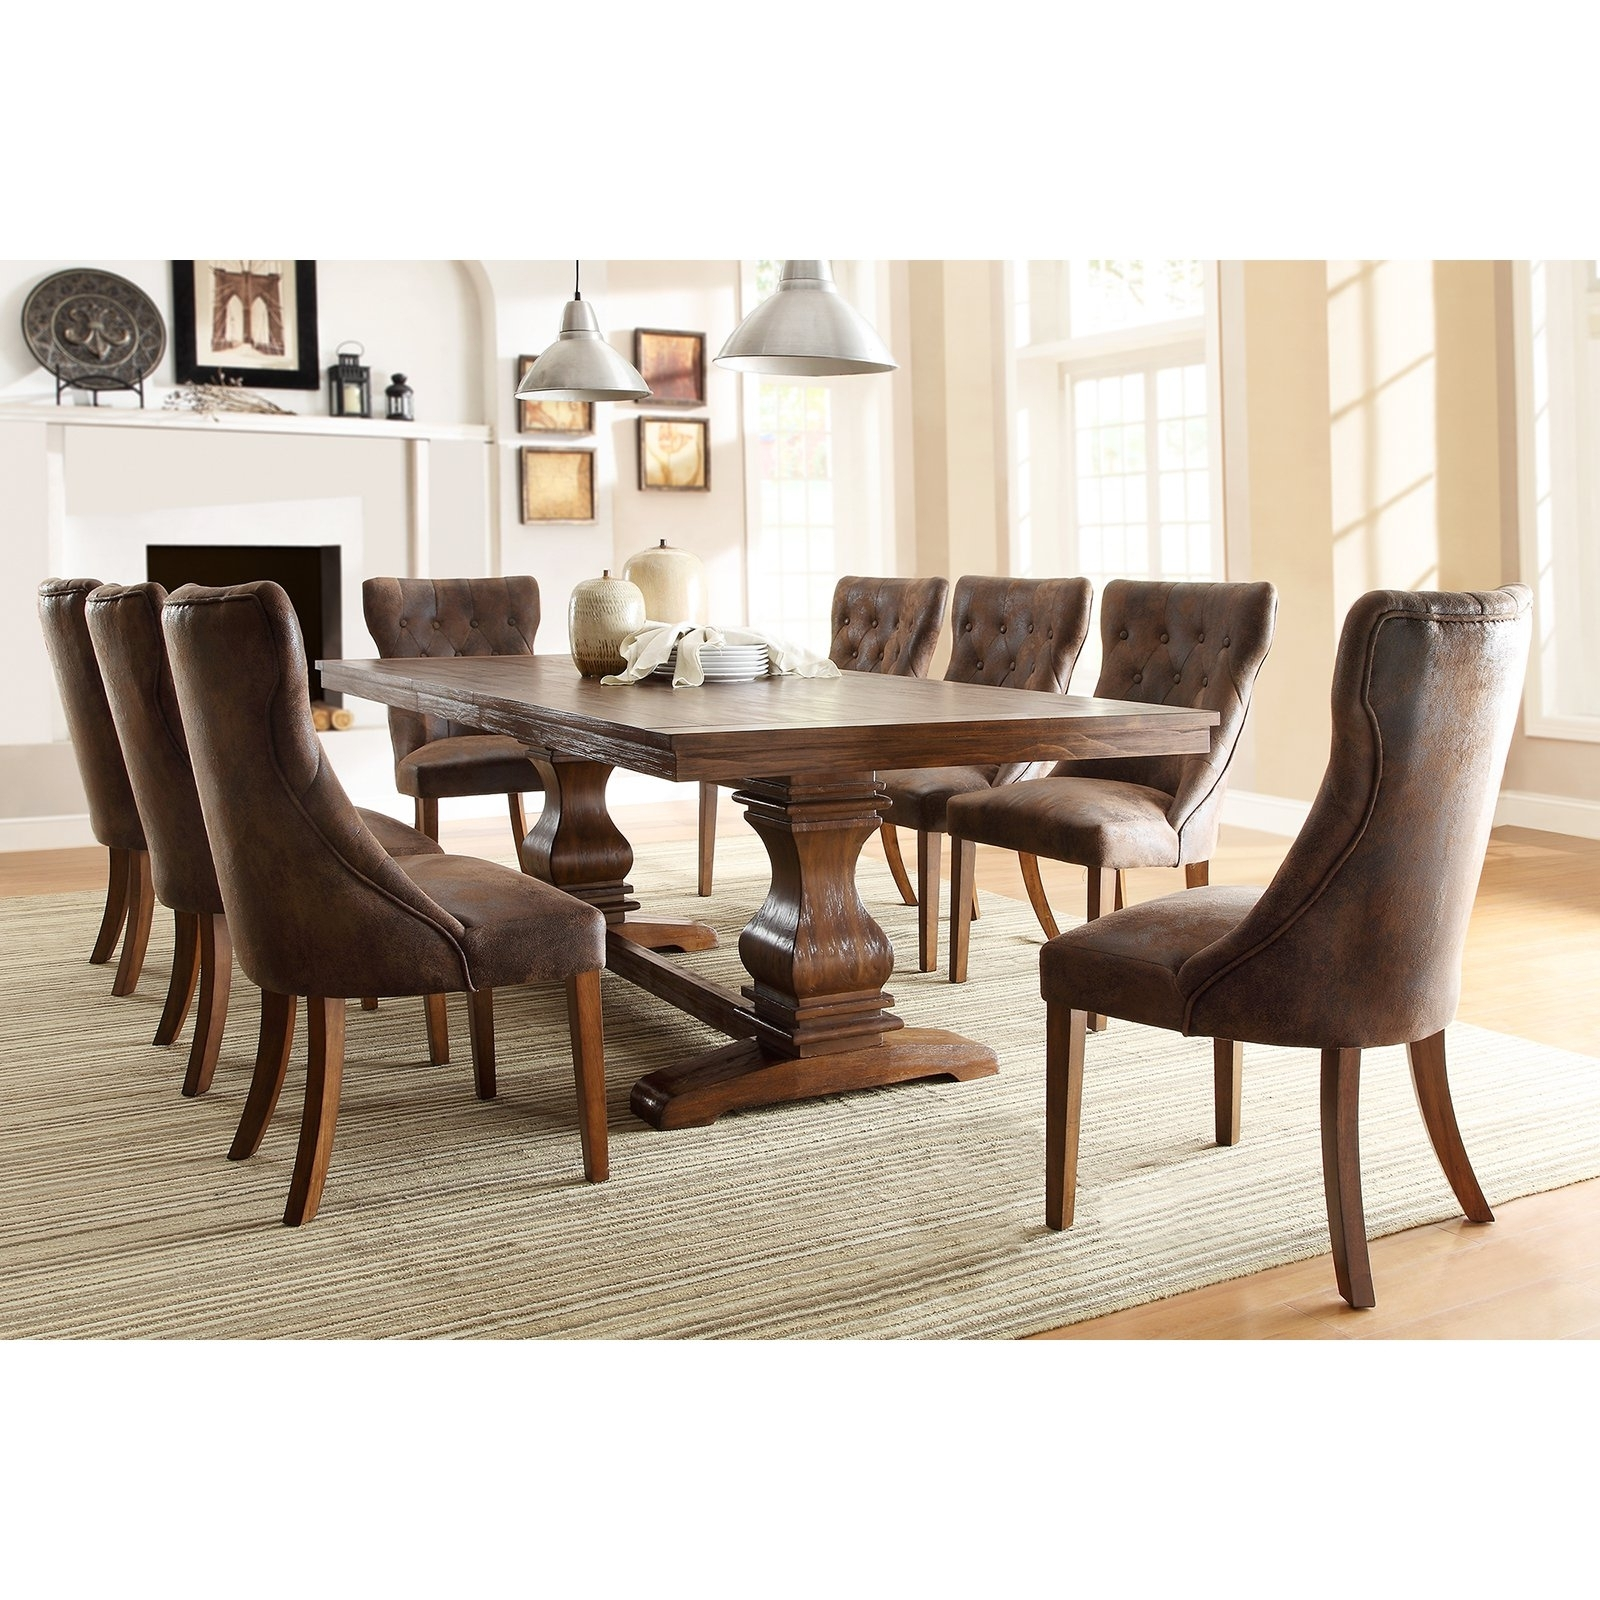 Cheap Oak Dining Sets Within Recent Weston Home Marie Louise 9 Piece Expandable Trestle Dining Table Set (View 14 of 25)